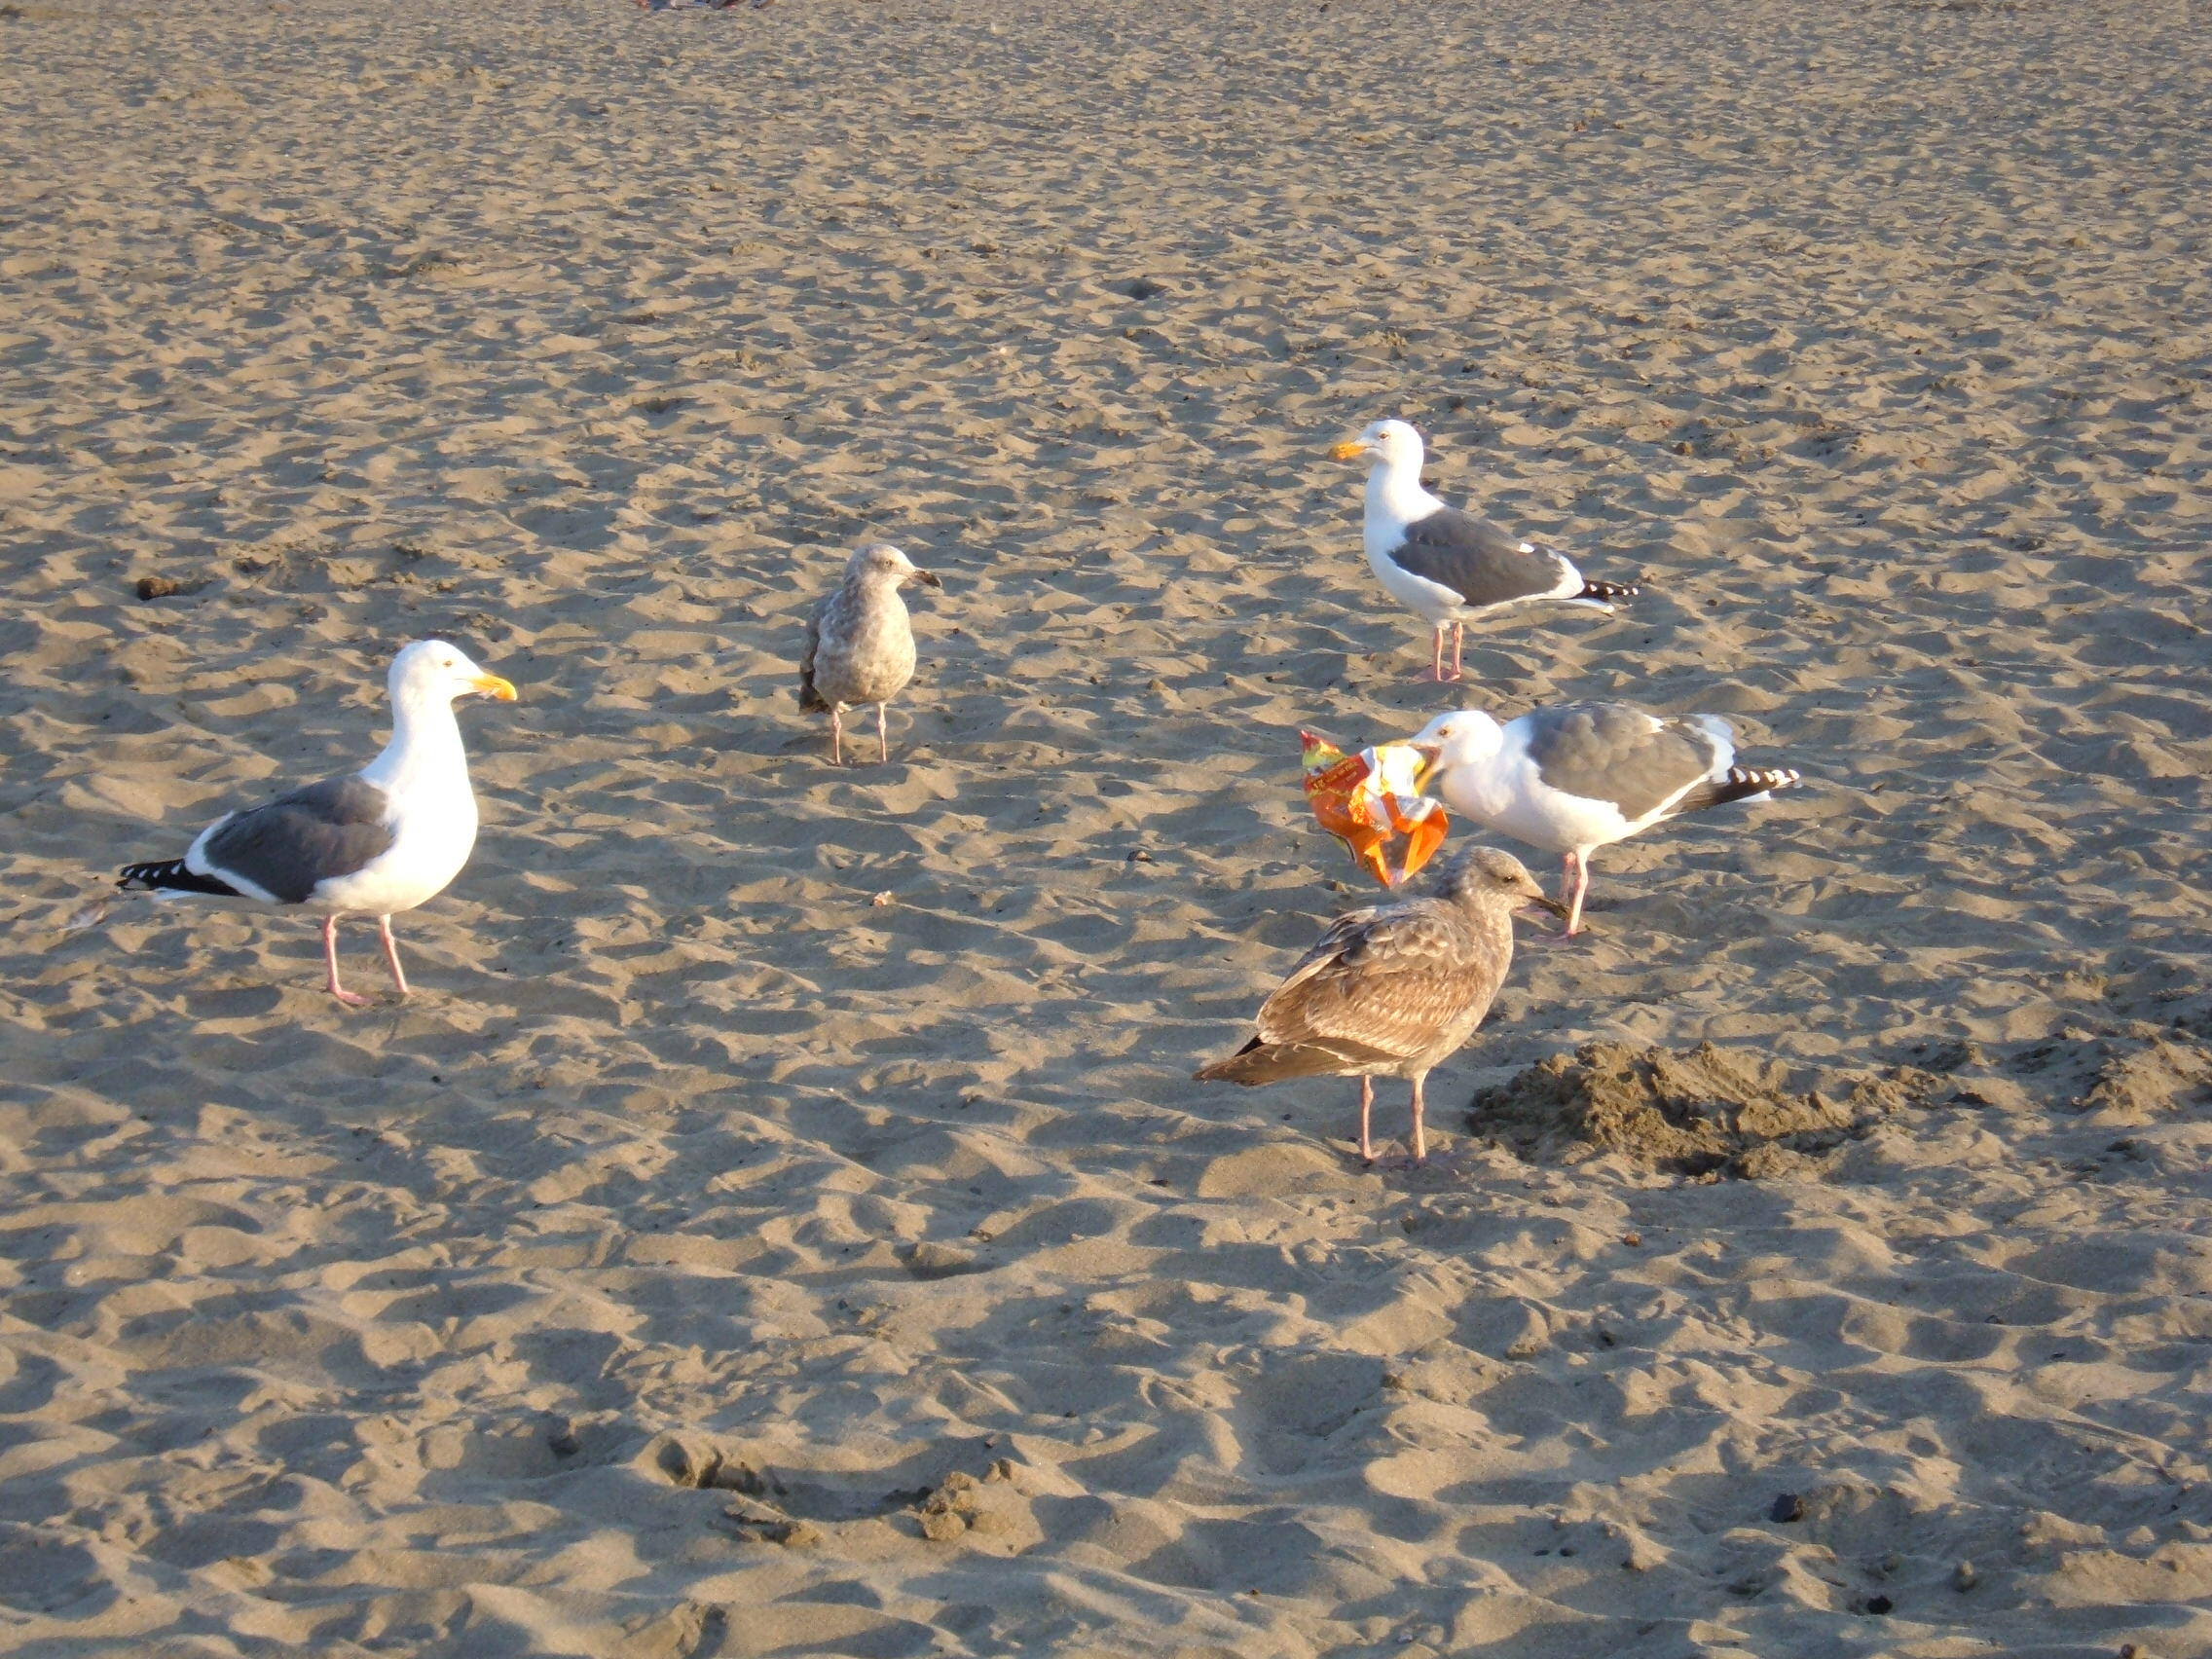 File:Seagulls feeding on junk food at Ocean Beach 1.JPG - Wikimedia Commons